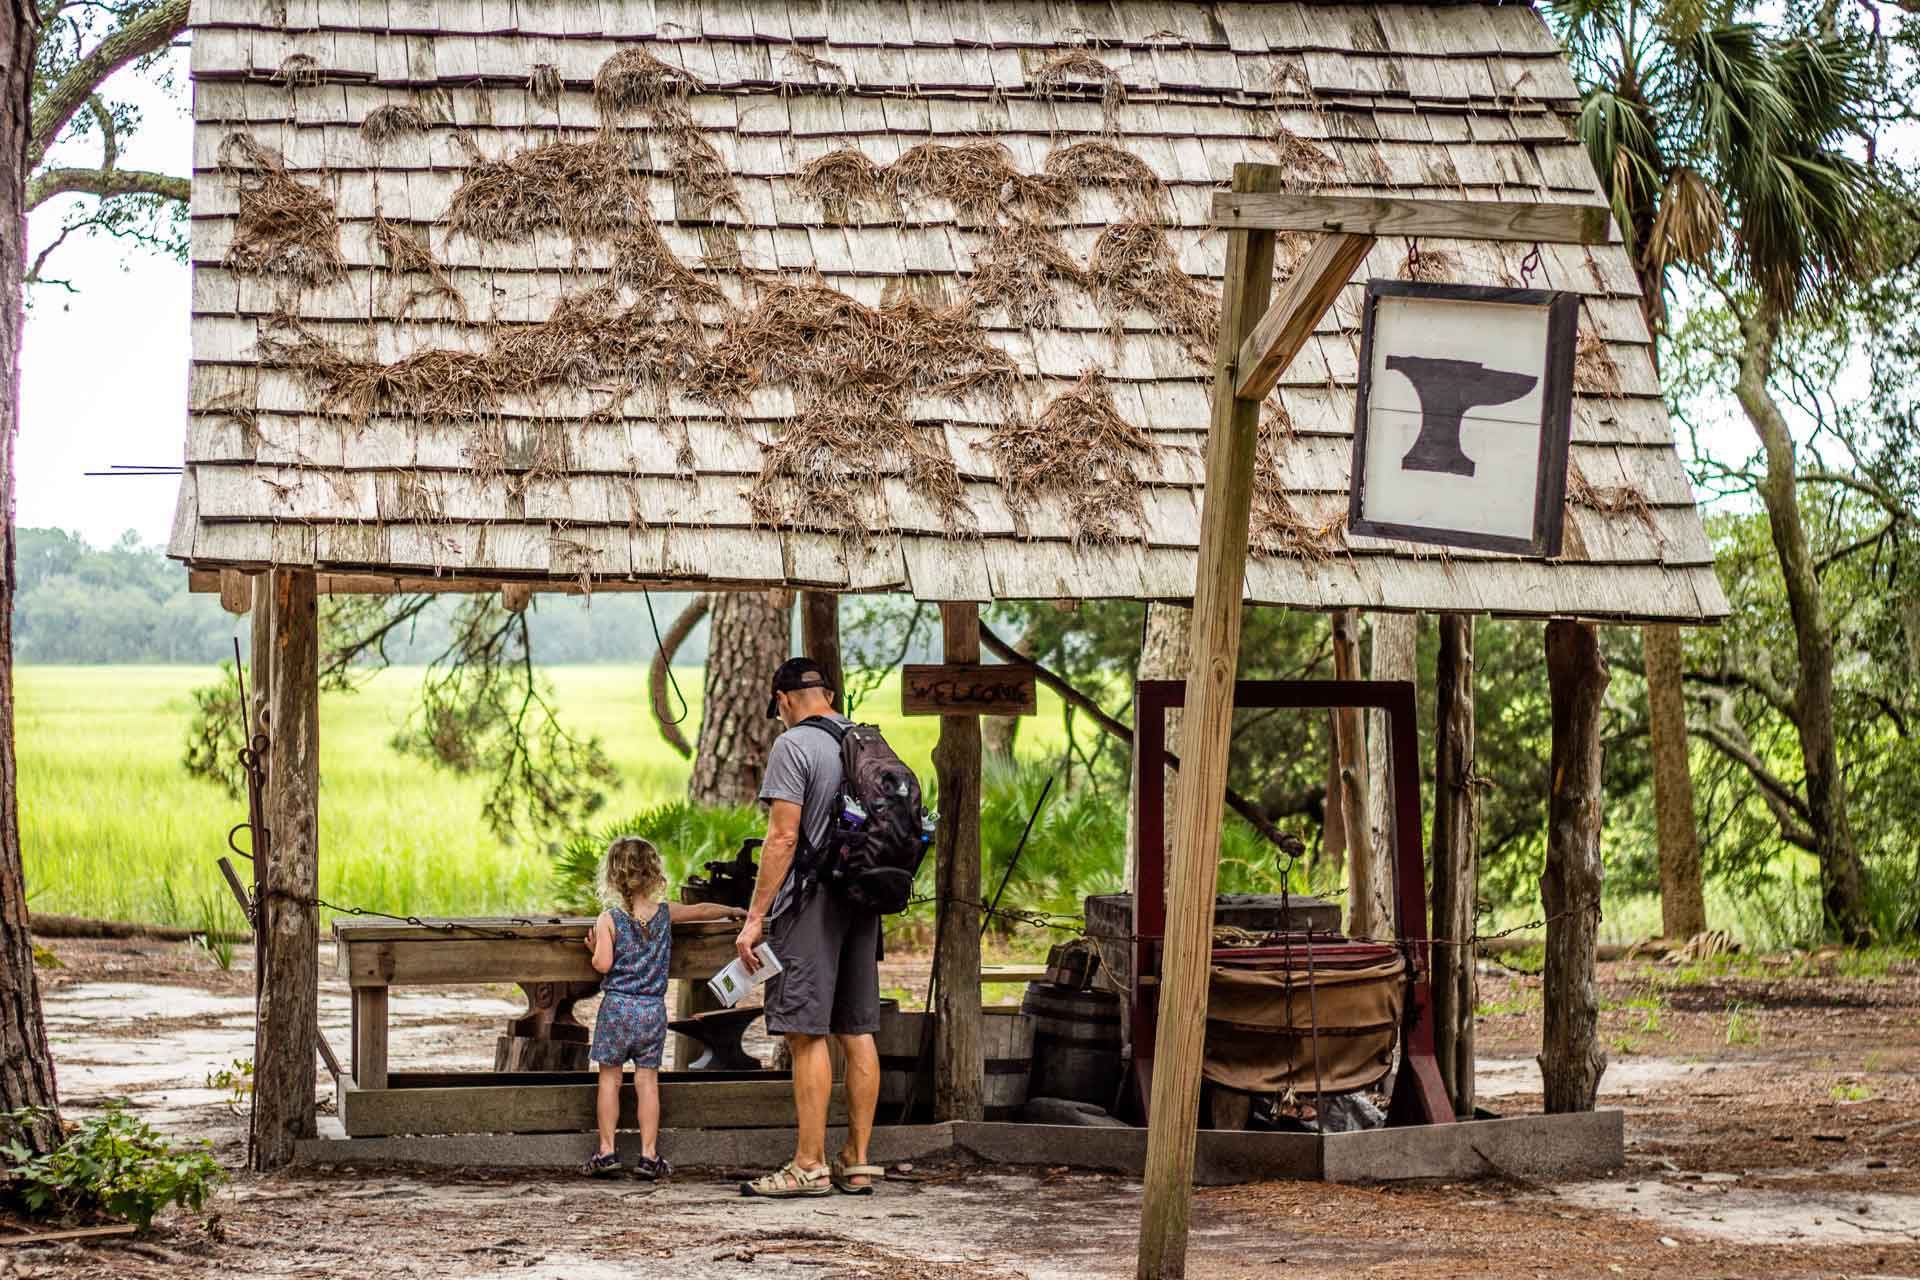 Family Can Travel - 2 Days in Savannah with Kids - Wormsloe Historic Site - Replica Blacksmiths Shop